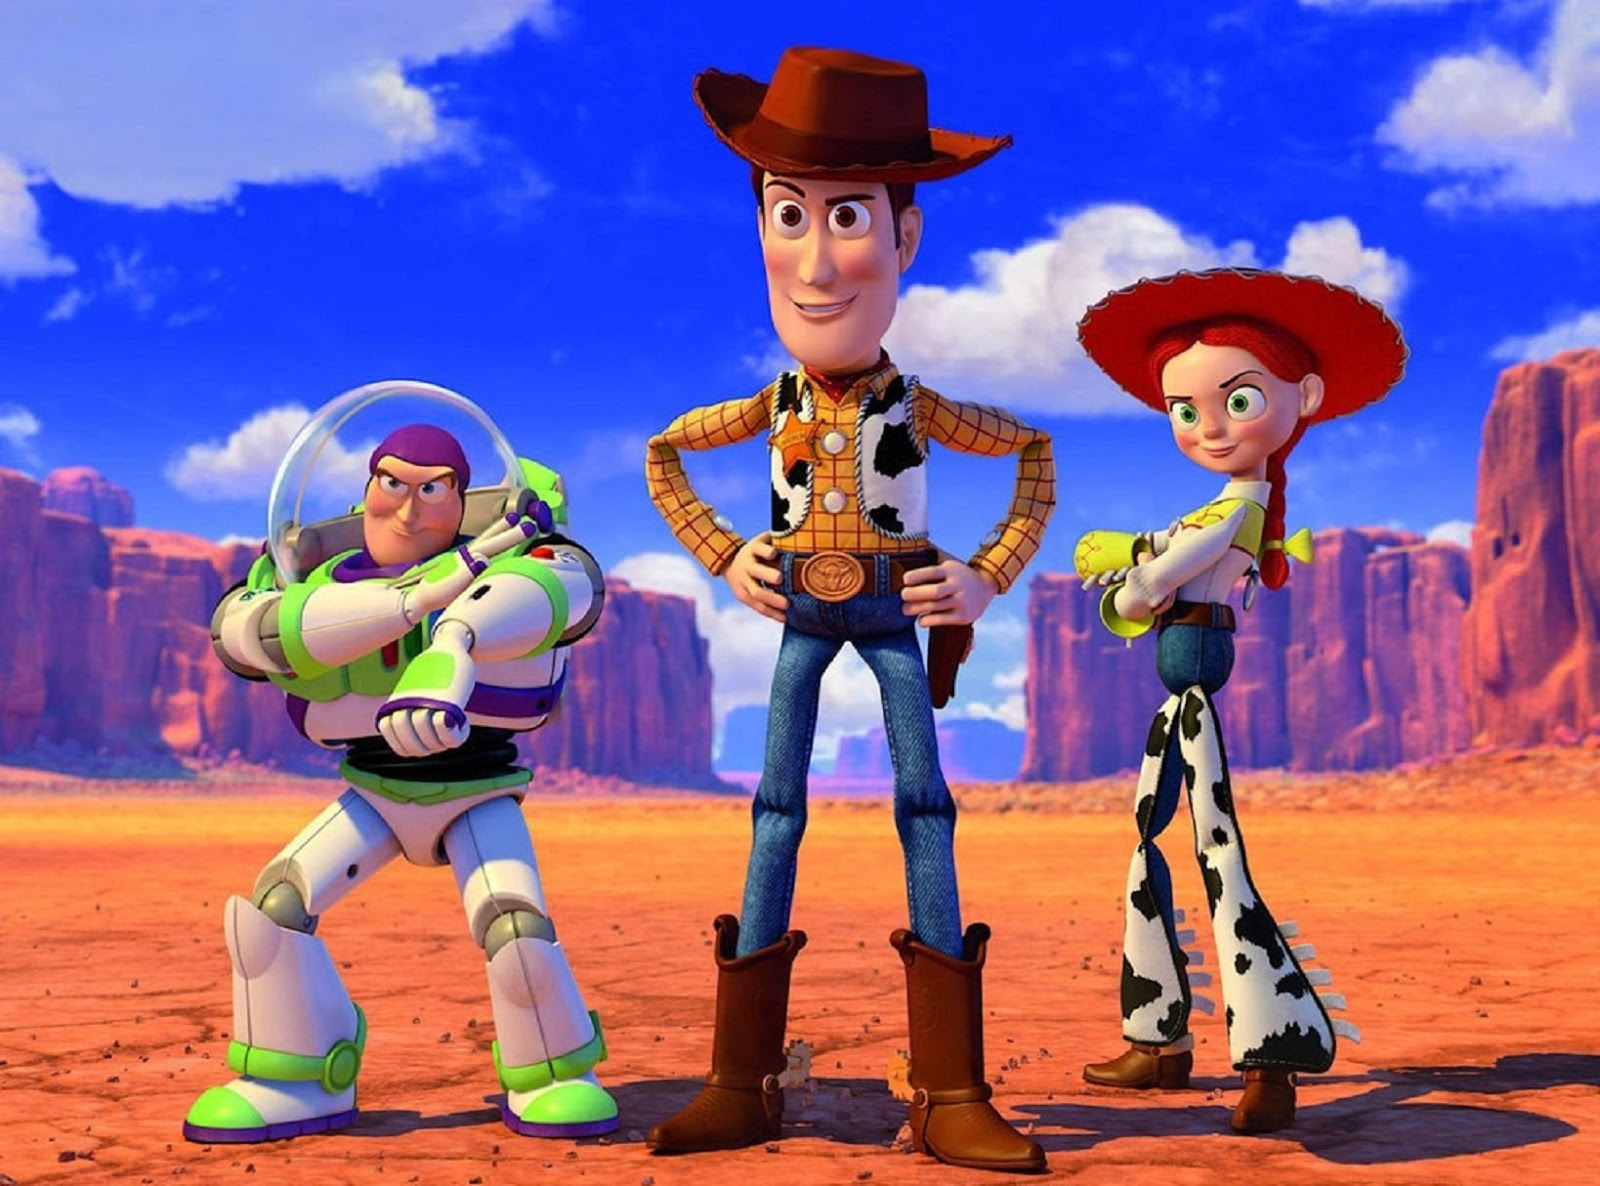 Disney hd wallpapers toy story hd wallpapers - Toy story wallpaper ...